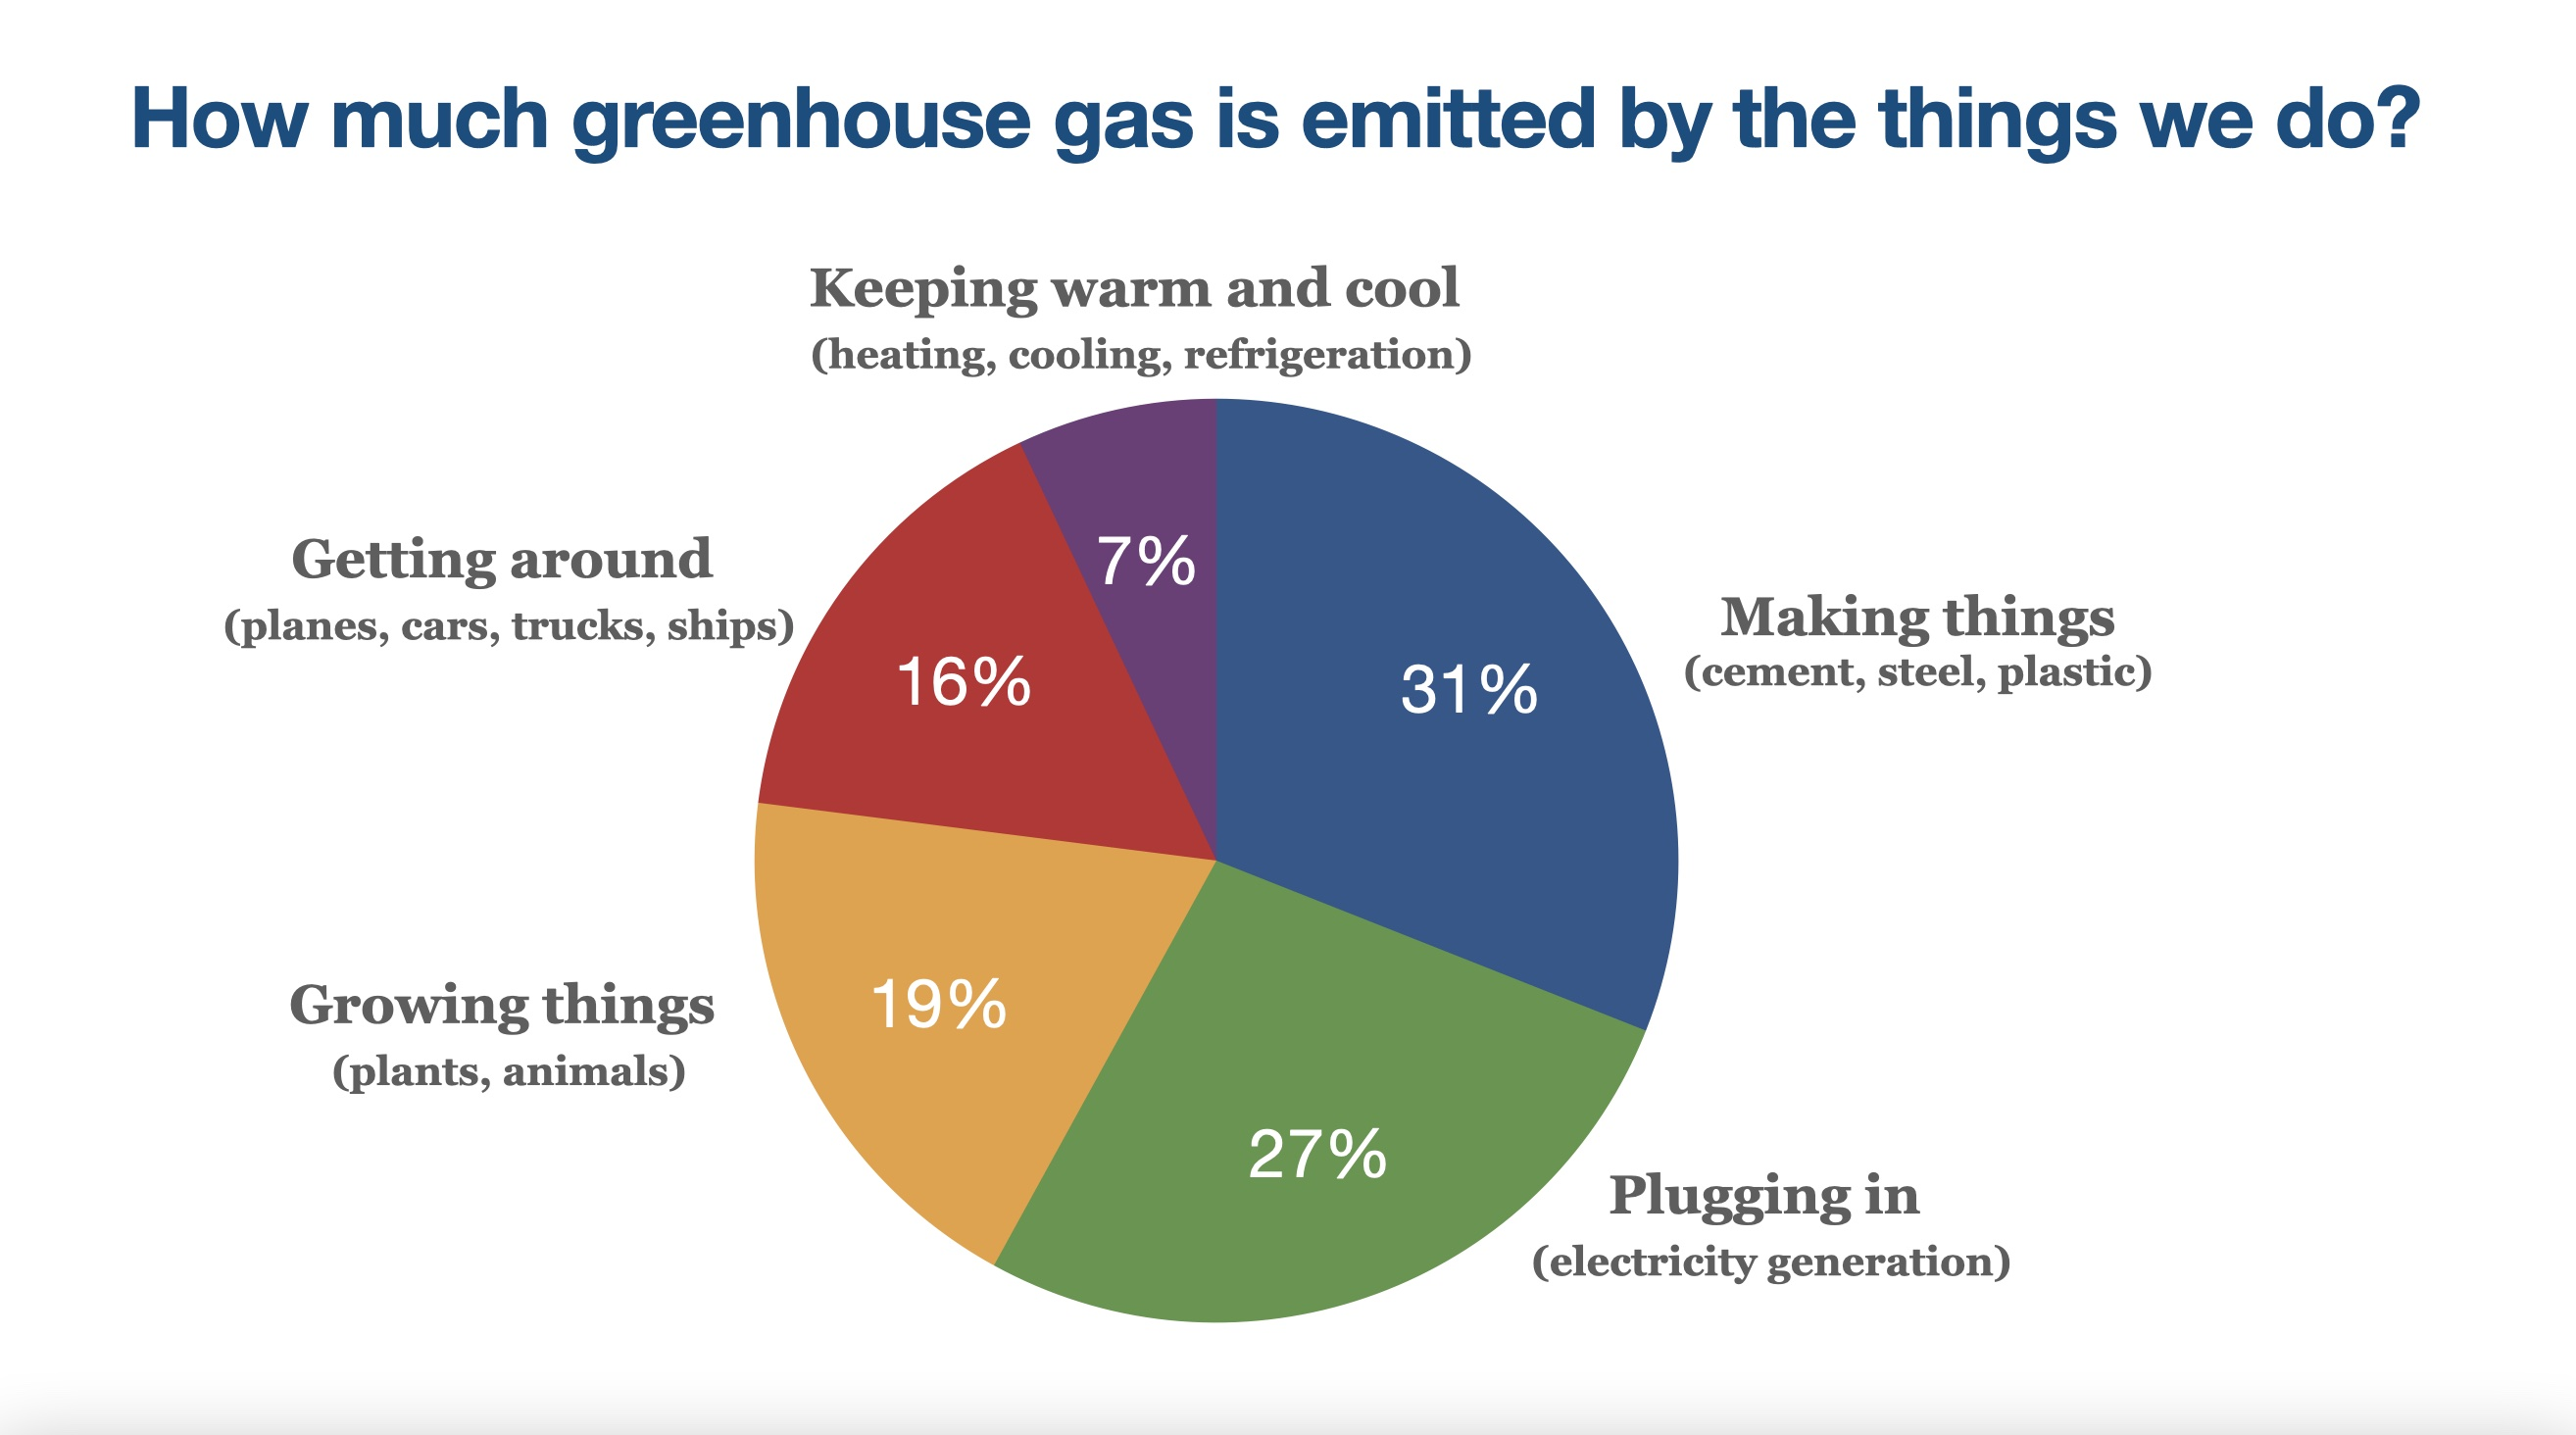 Pie chart showing how much greenhouse gas is emitted by the things we do